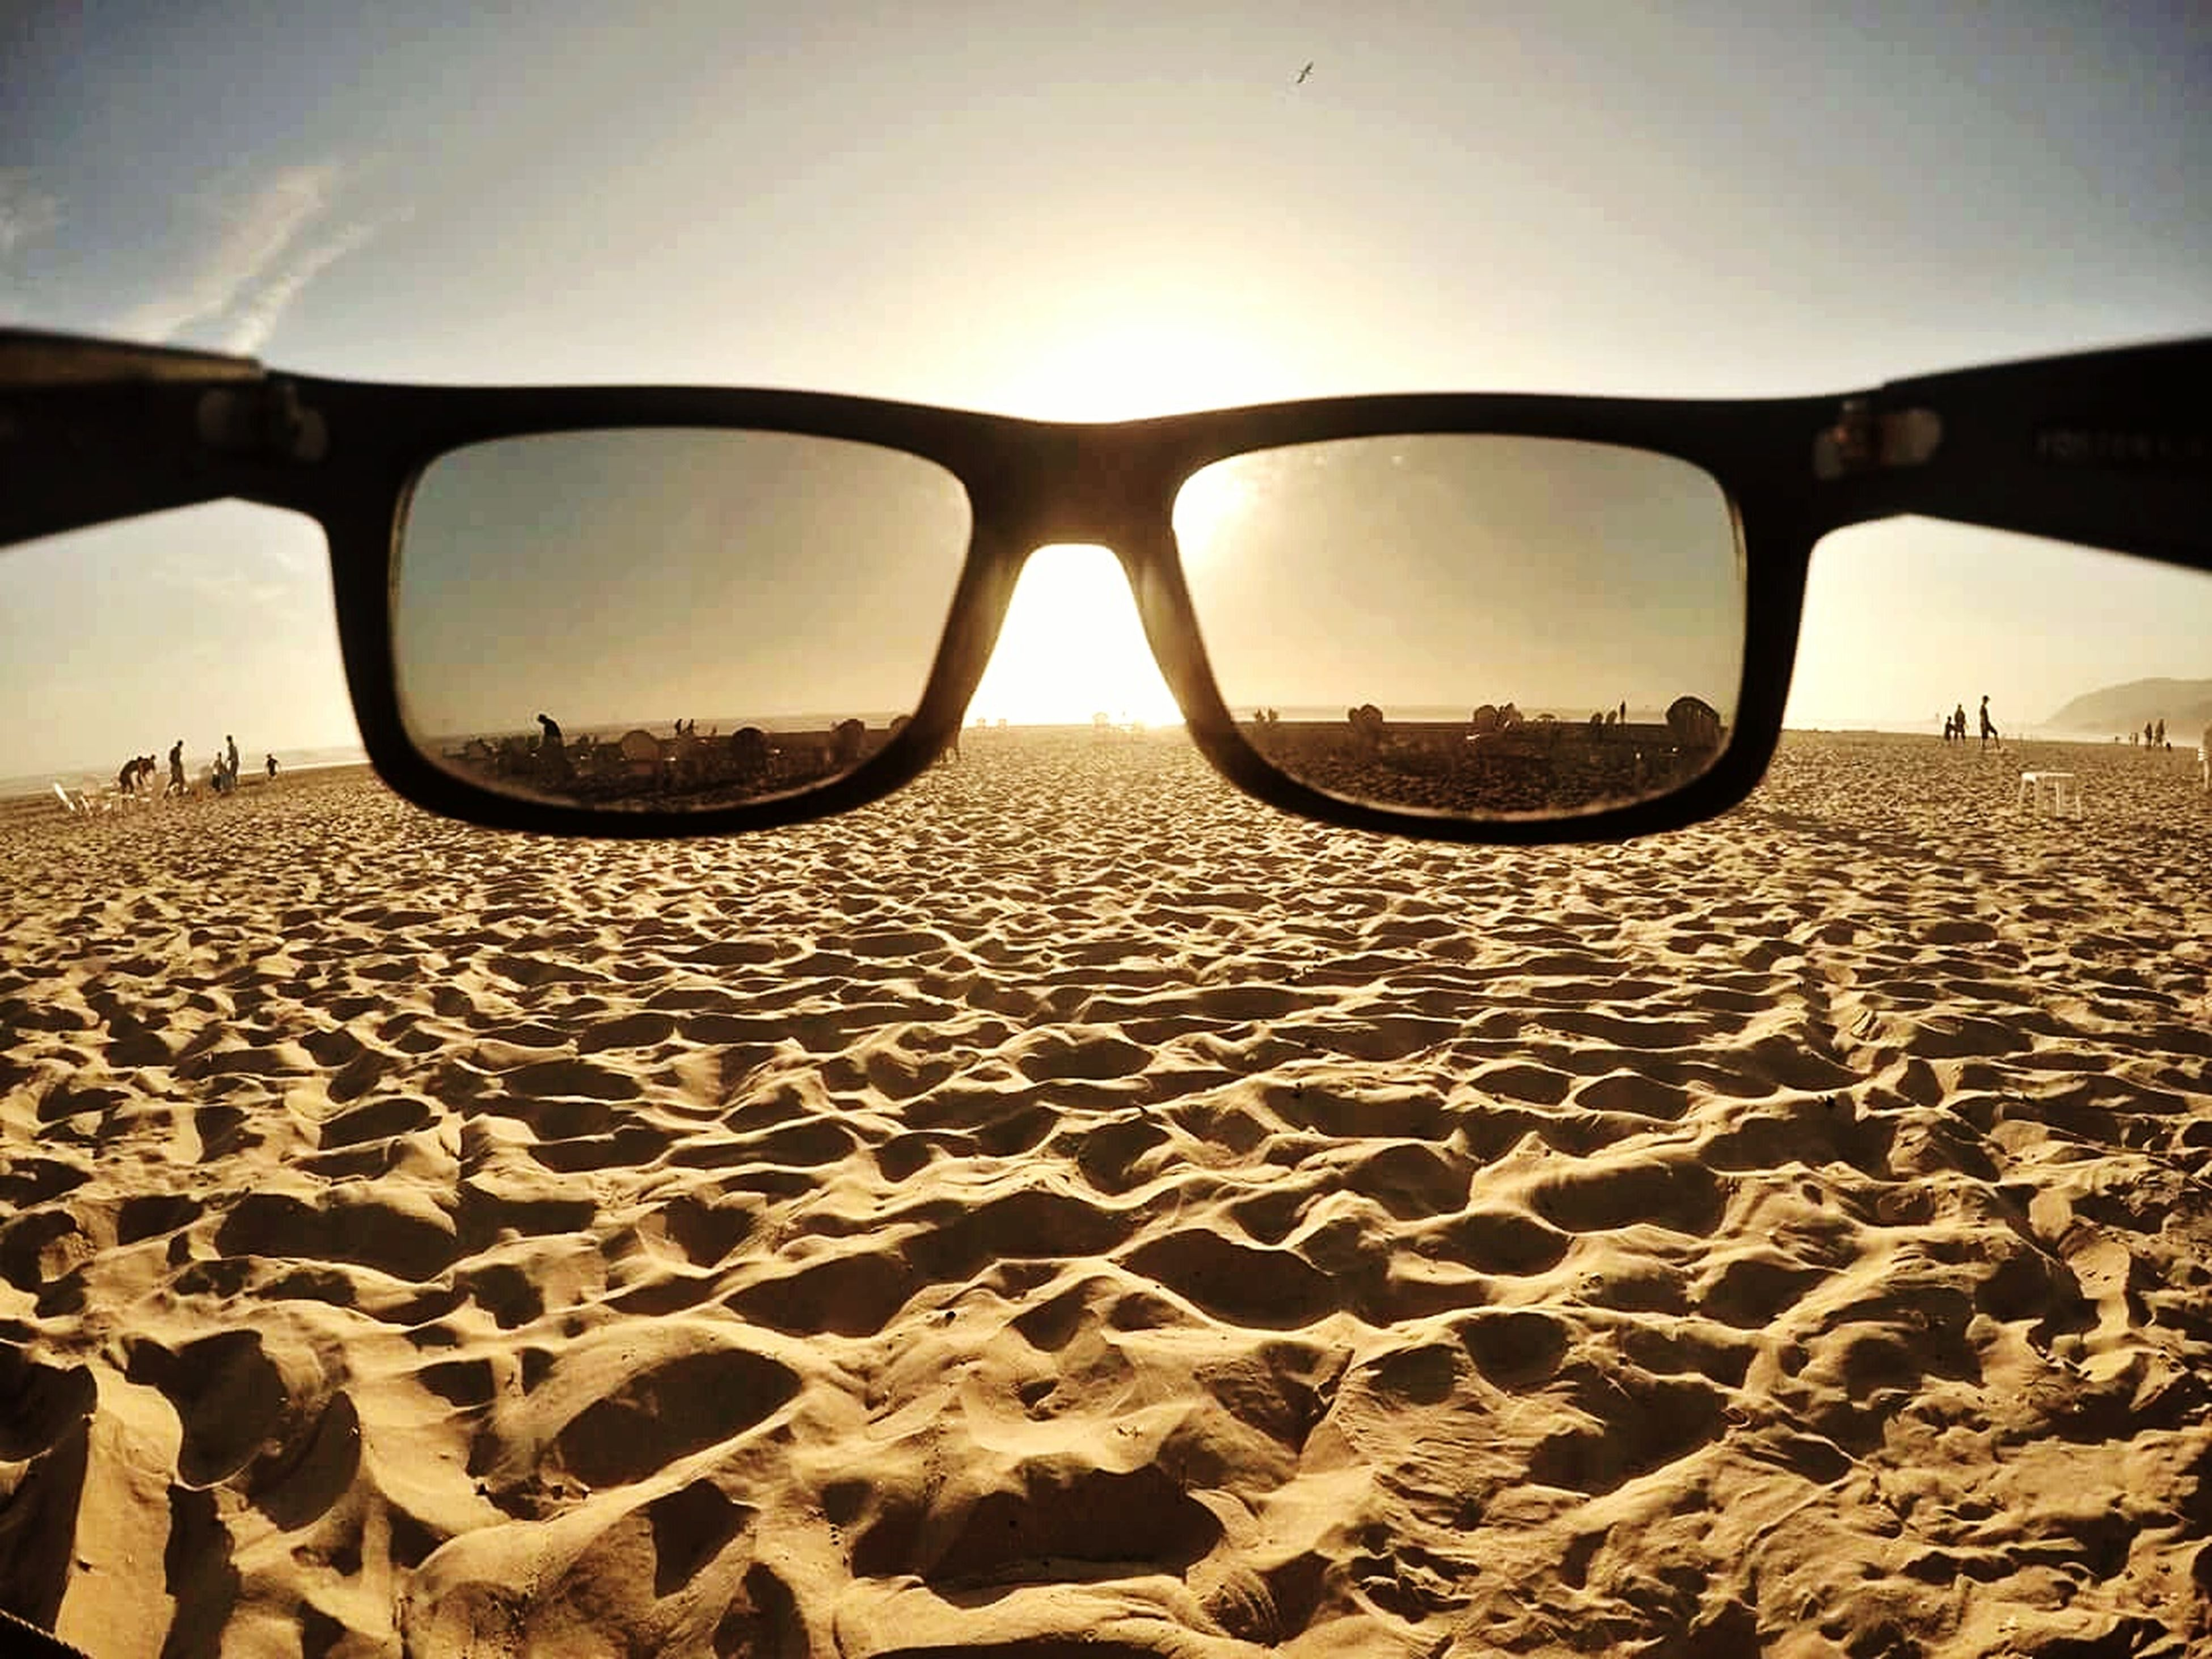 sunglasses, sand, sunset, nature, eyeglasses, beach, sky, eyewear, no people, outdoors, water, beauty in nature, day, close-up